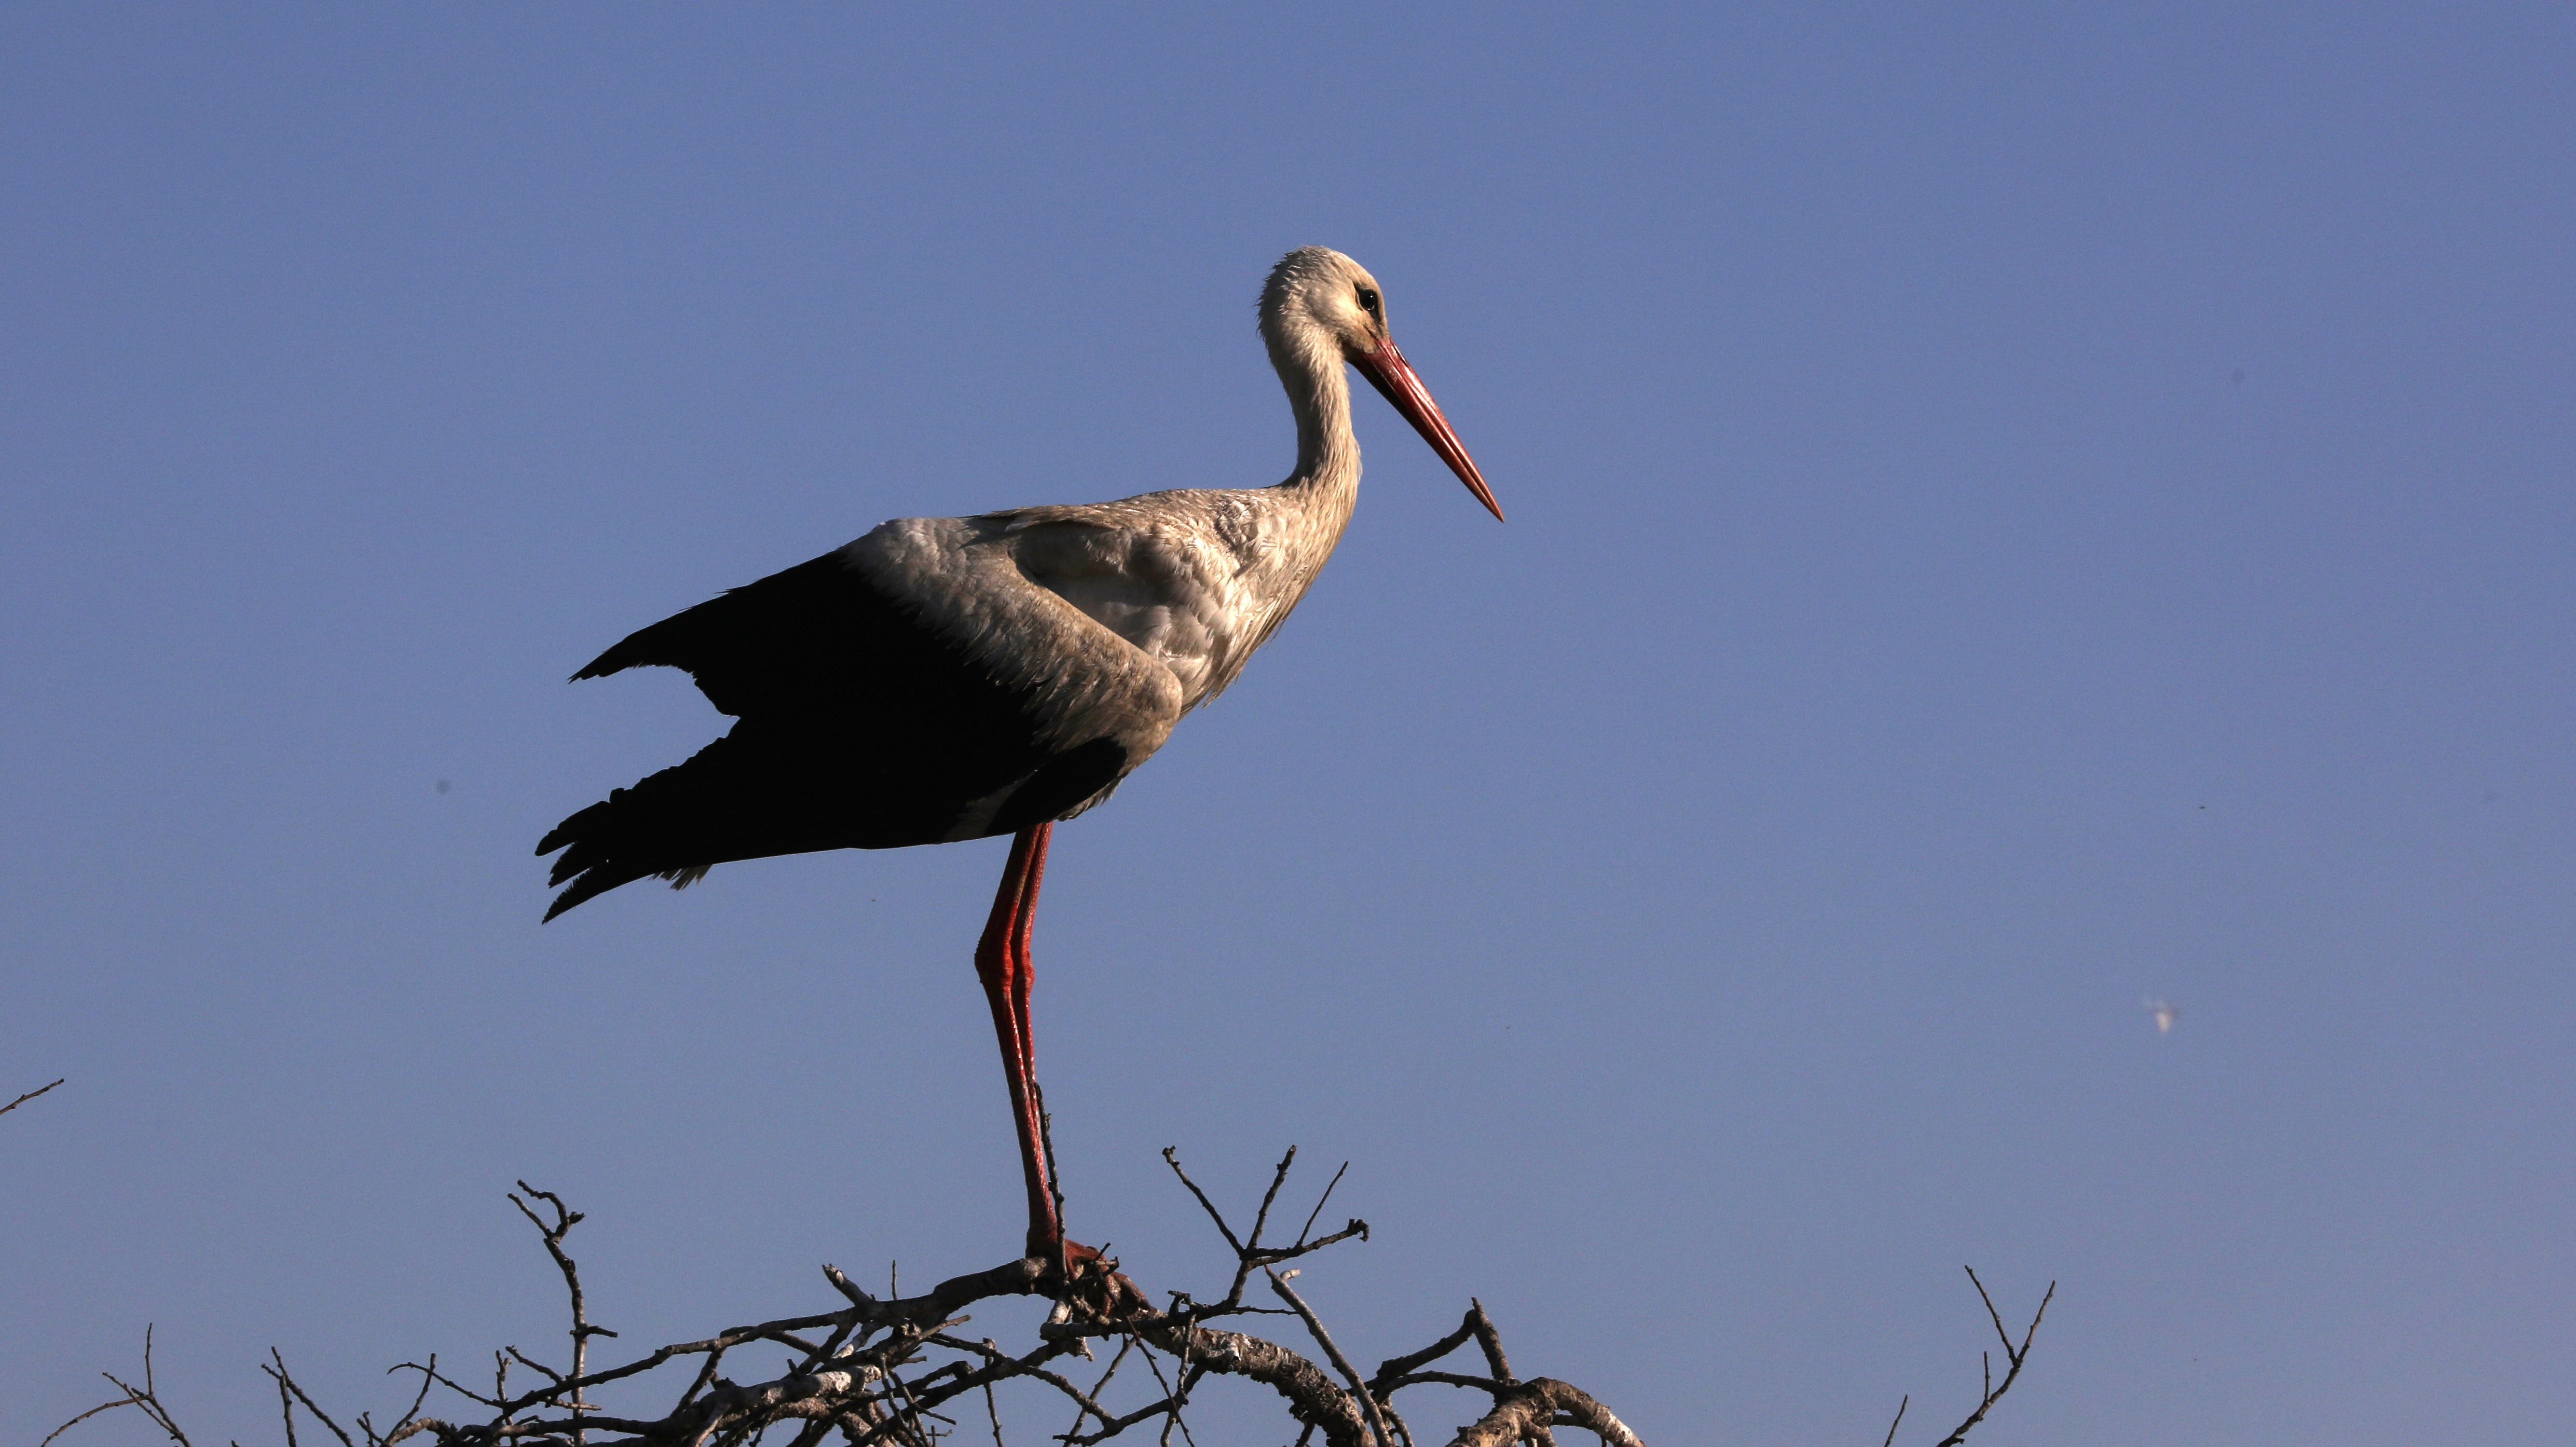 Stork flies off with tracker, charity gets $2,700 phone bill